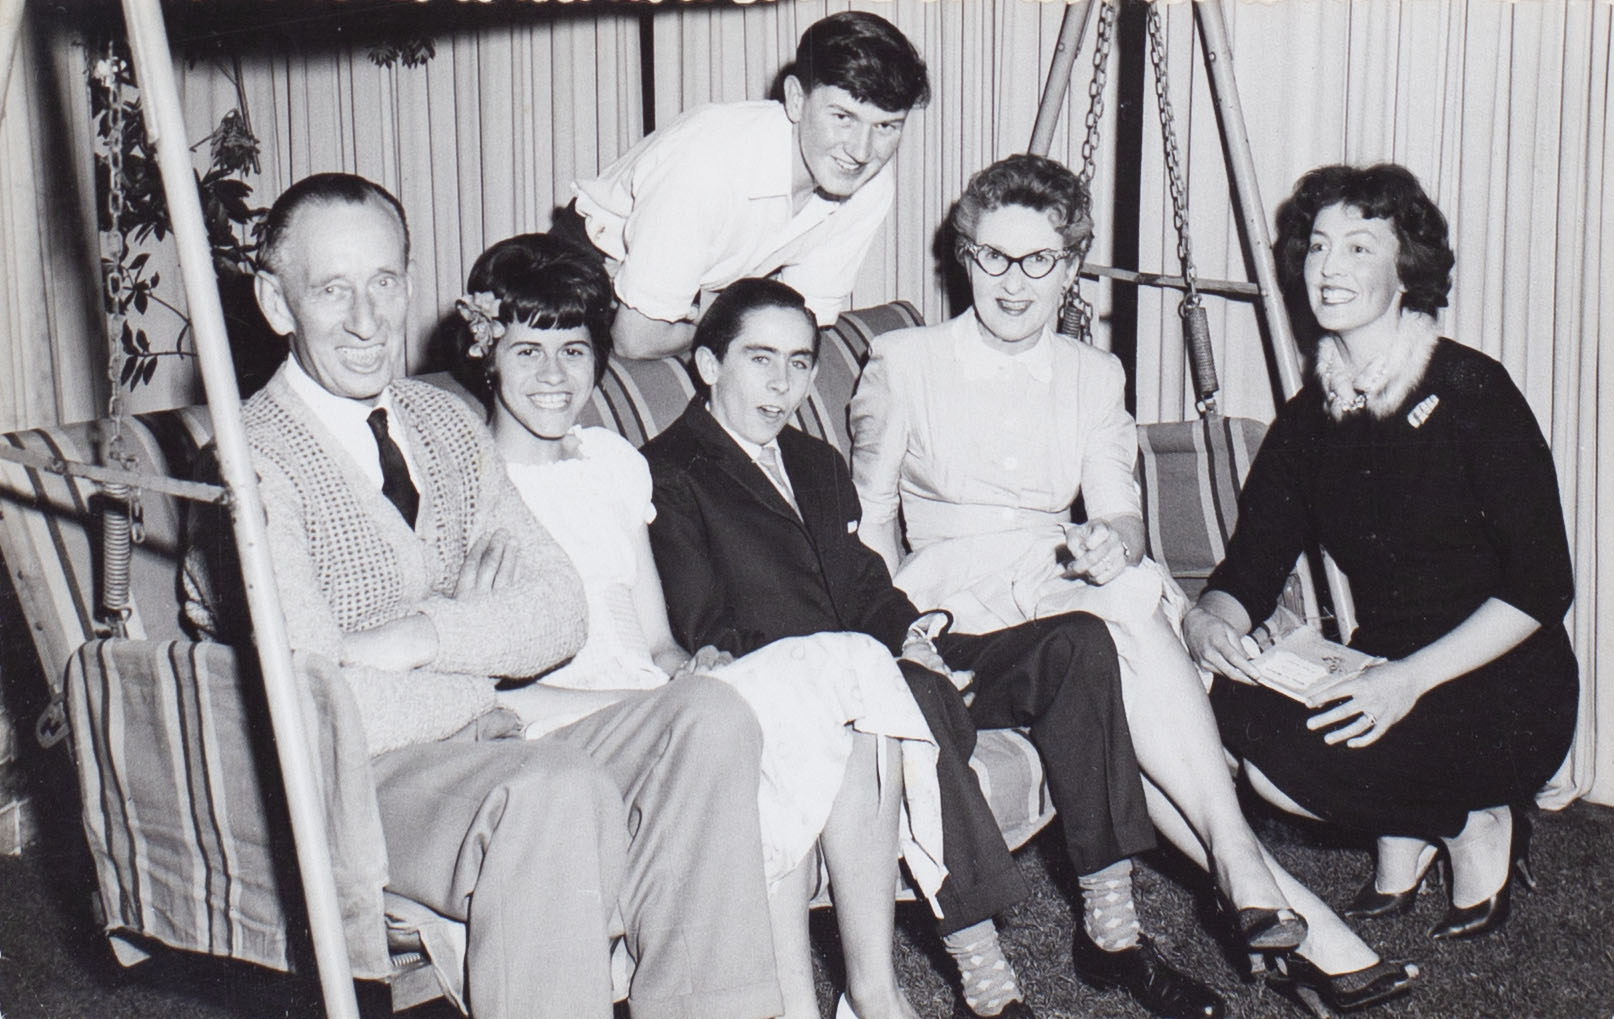 Photograph of backstage crew of the play 'Ring O'Roses' performed by the Bishopsteignton Players in the 1960s